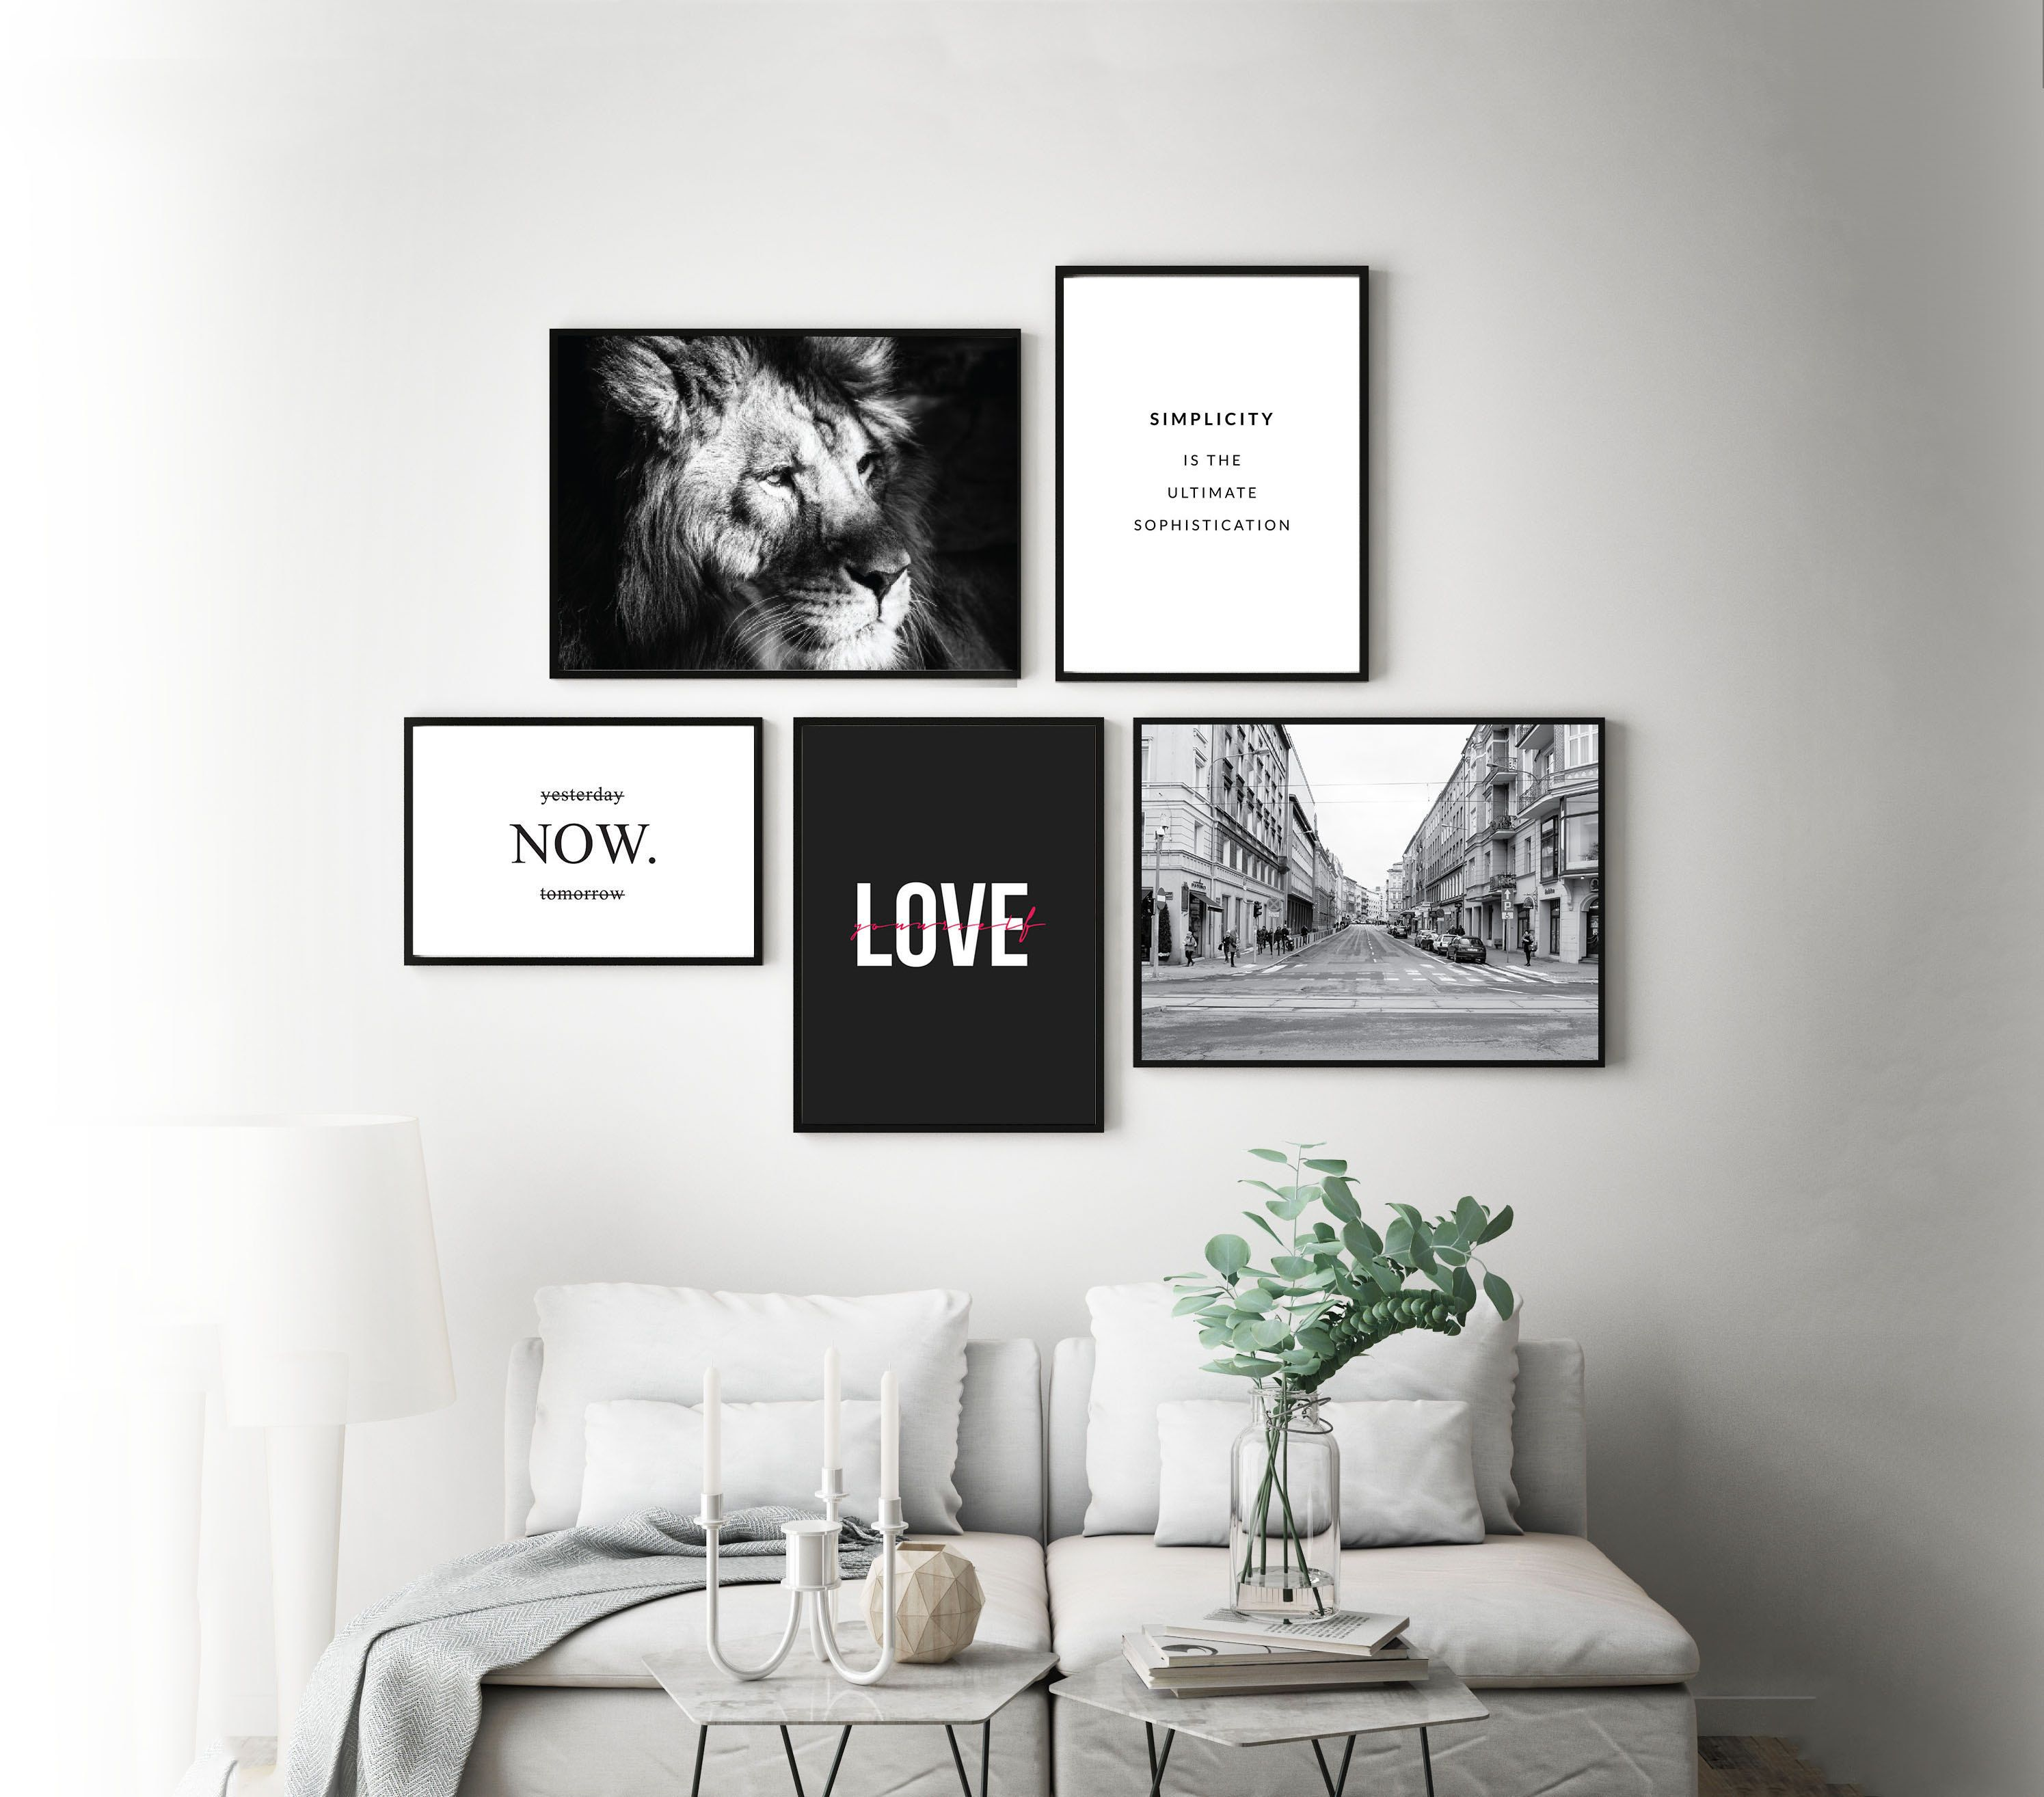 Set Of 5 Posters Wall Decor Printable Wall Art Wall Decor Etsy In 2021 Wall Decor Printables Wall Decor Bedroom Wall Printables